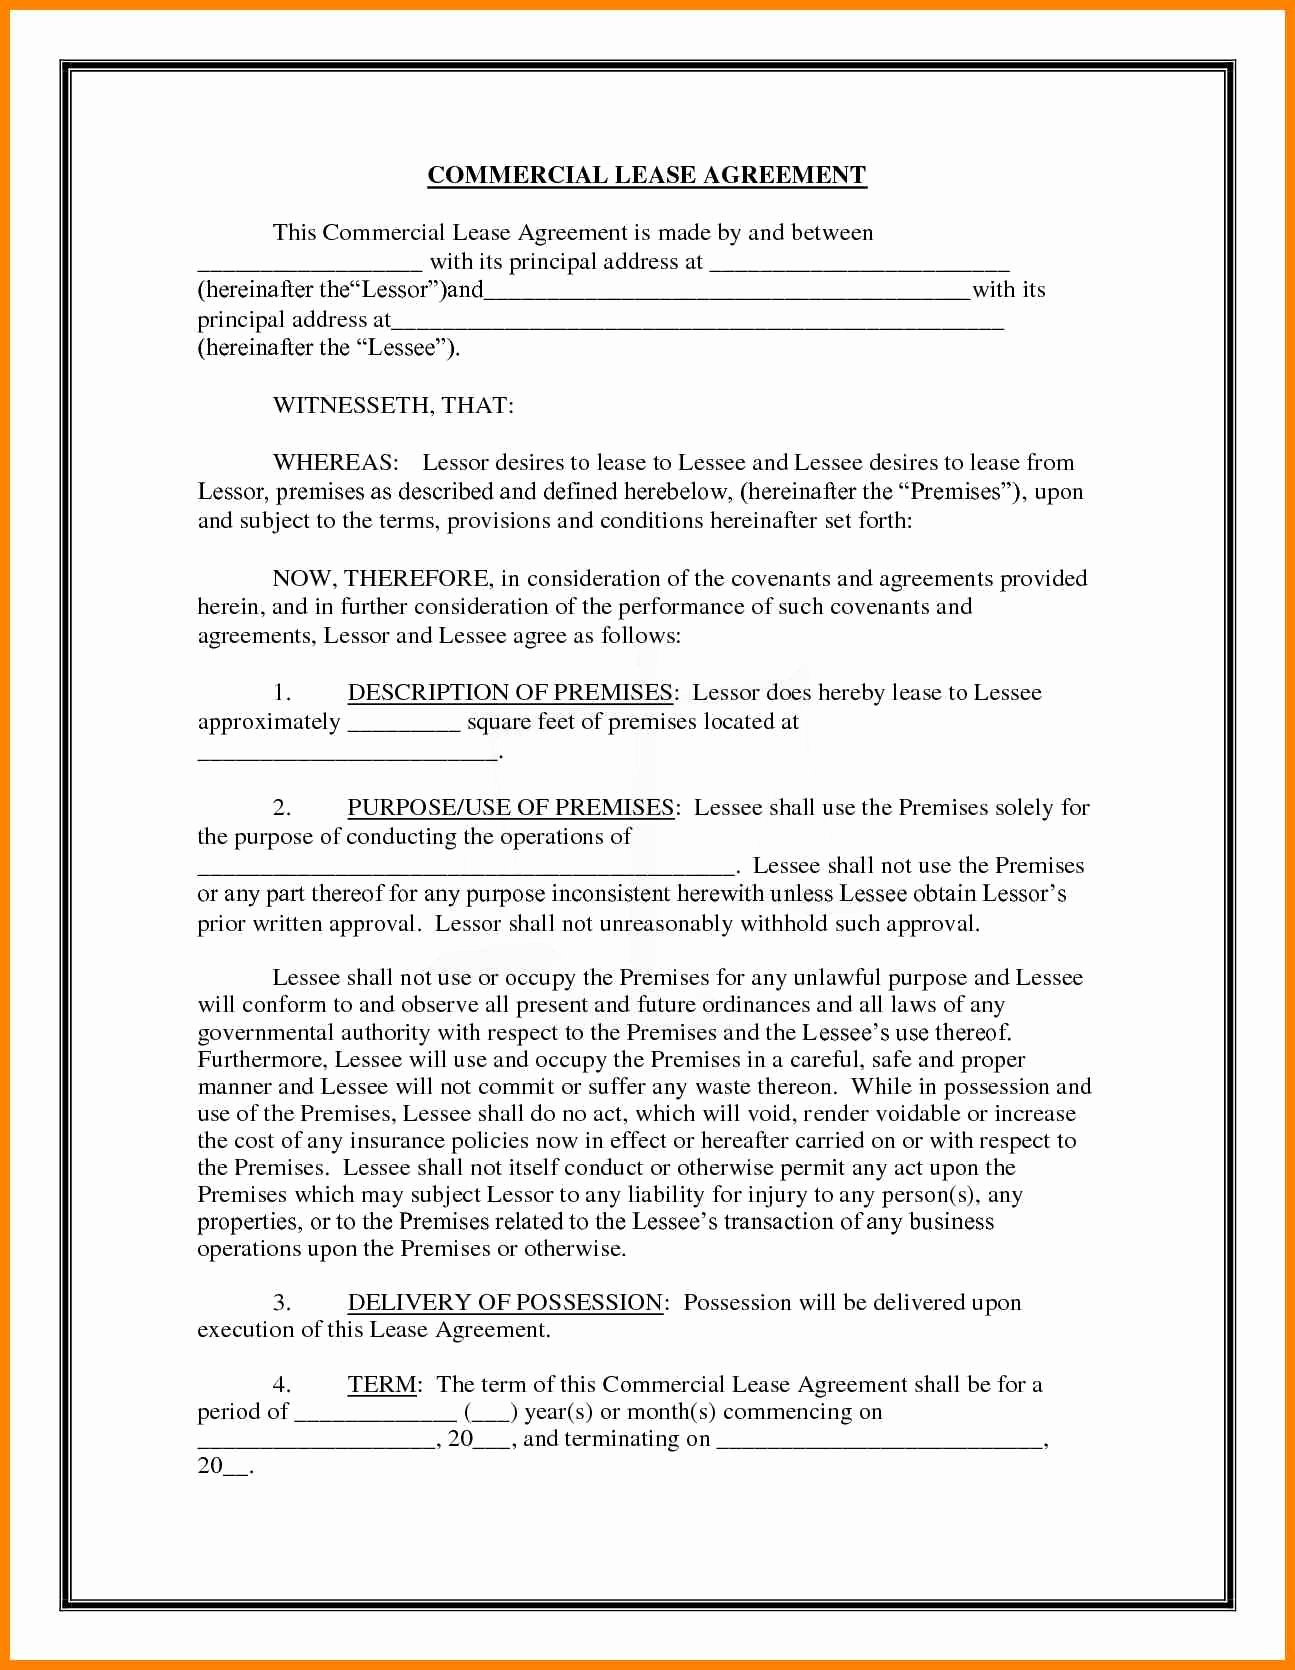 Commercial Lease Agreement Template Free Fresh Mercial Lease Agreement Template Free